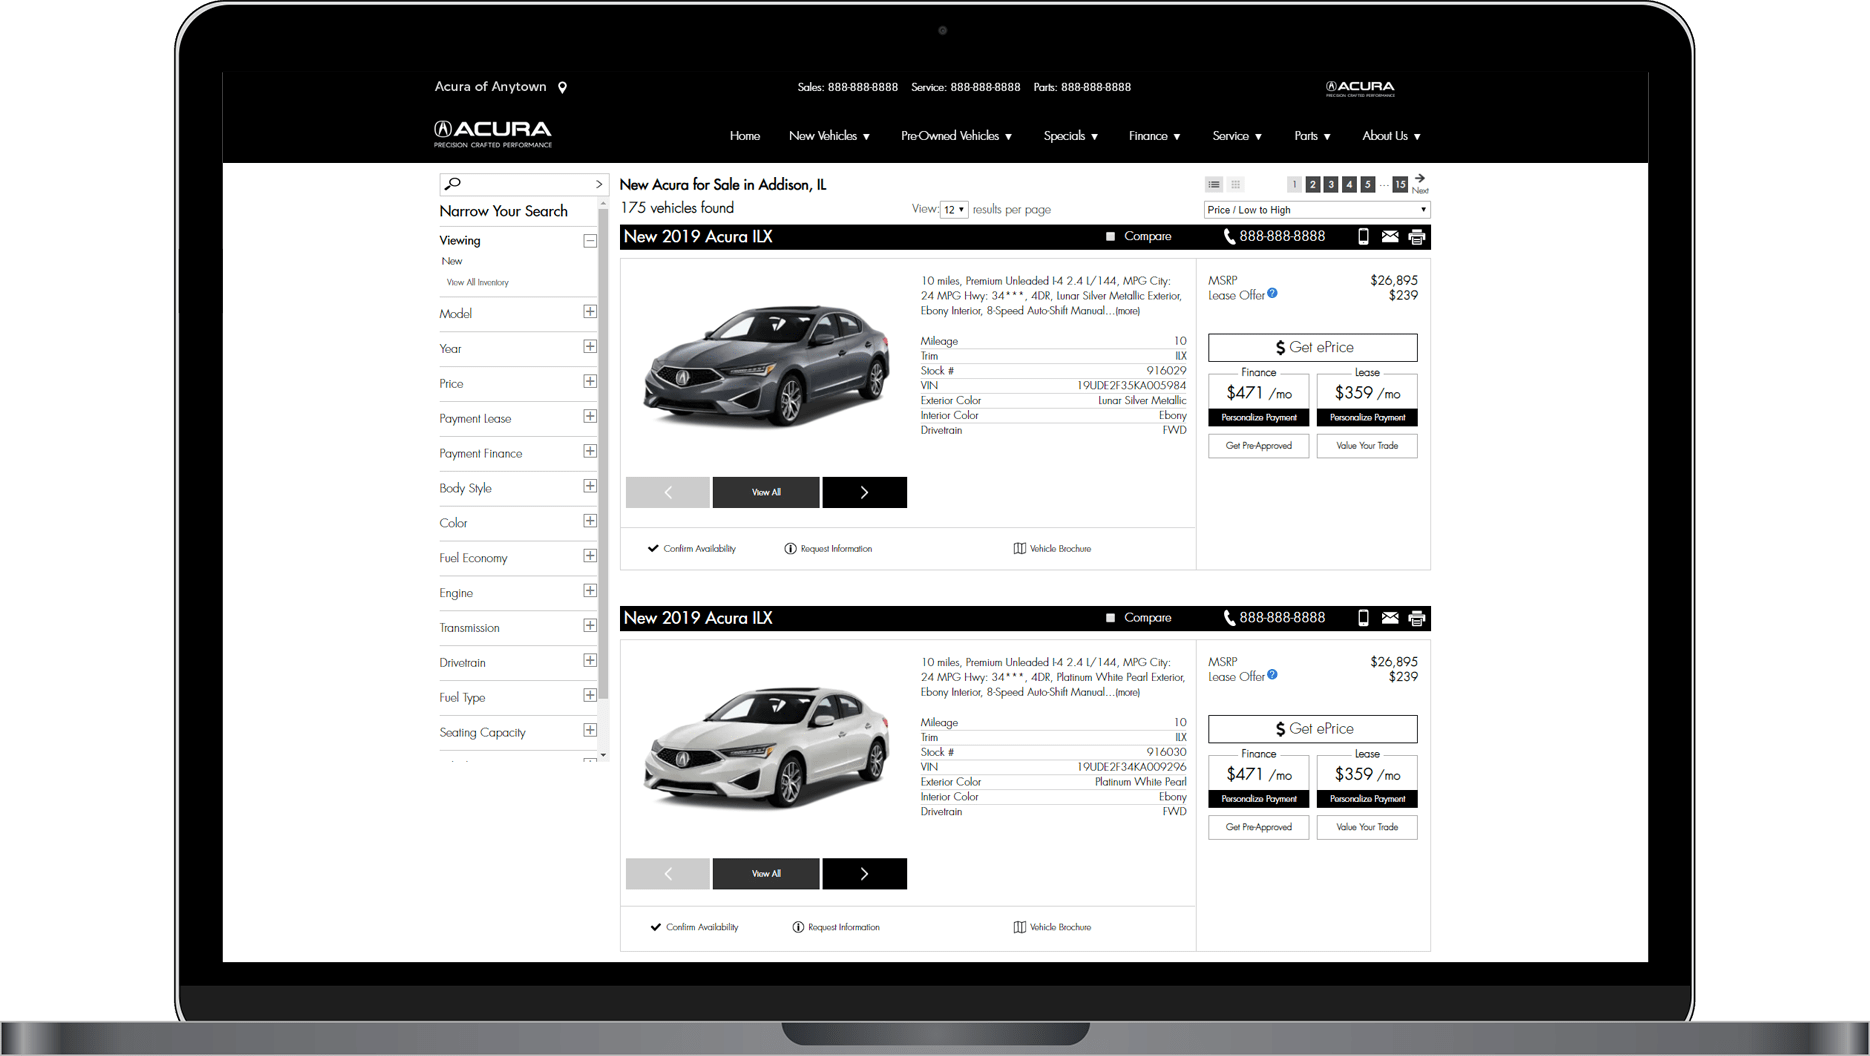 SRP for Acura website, list view